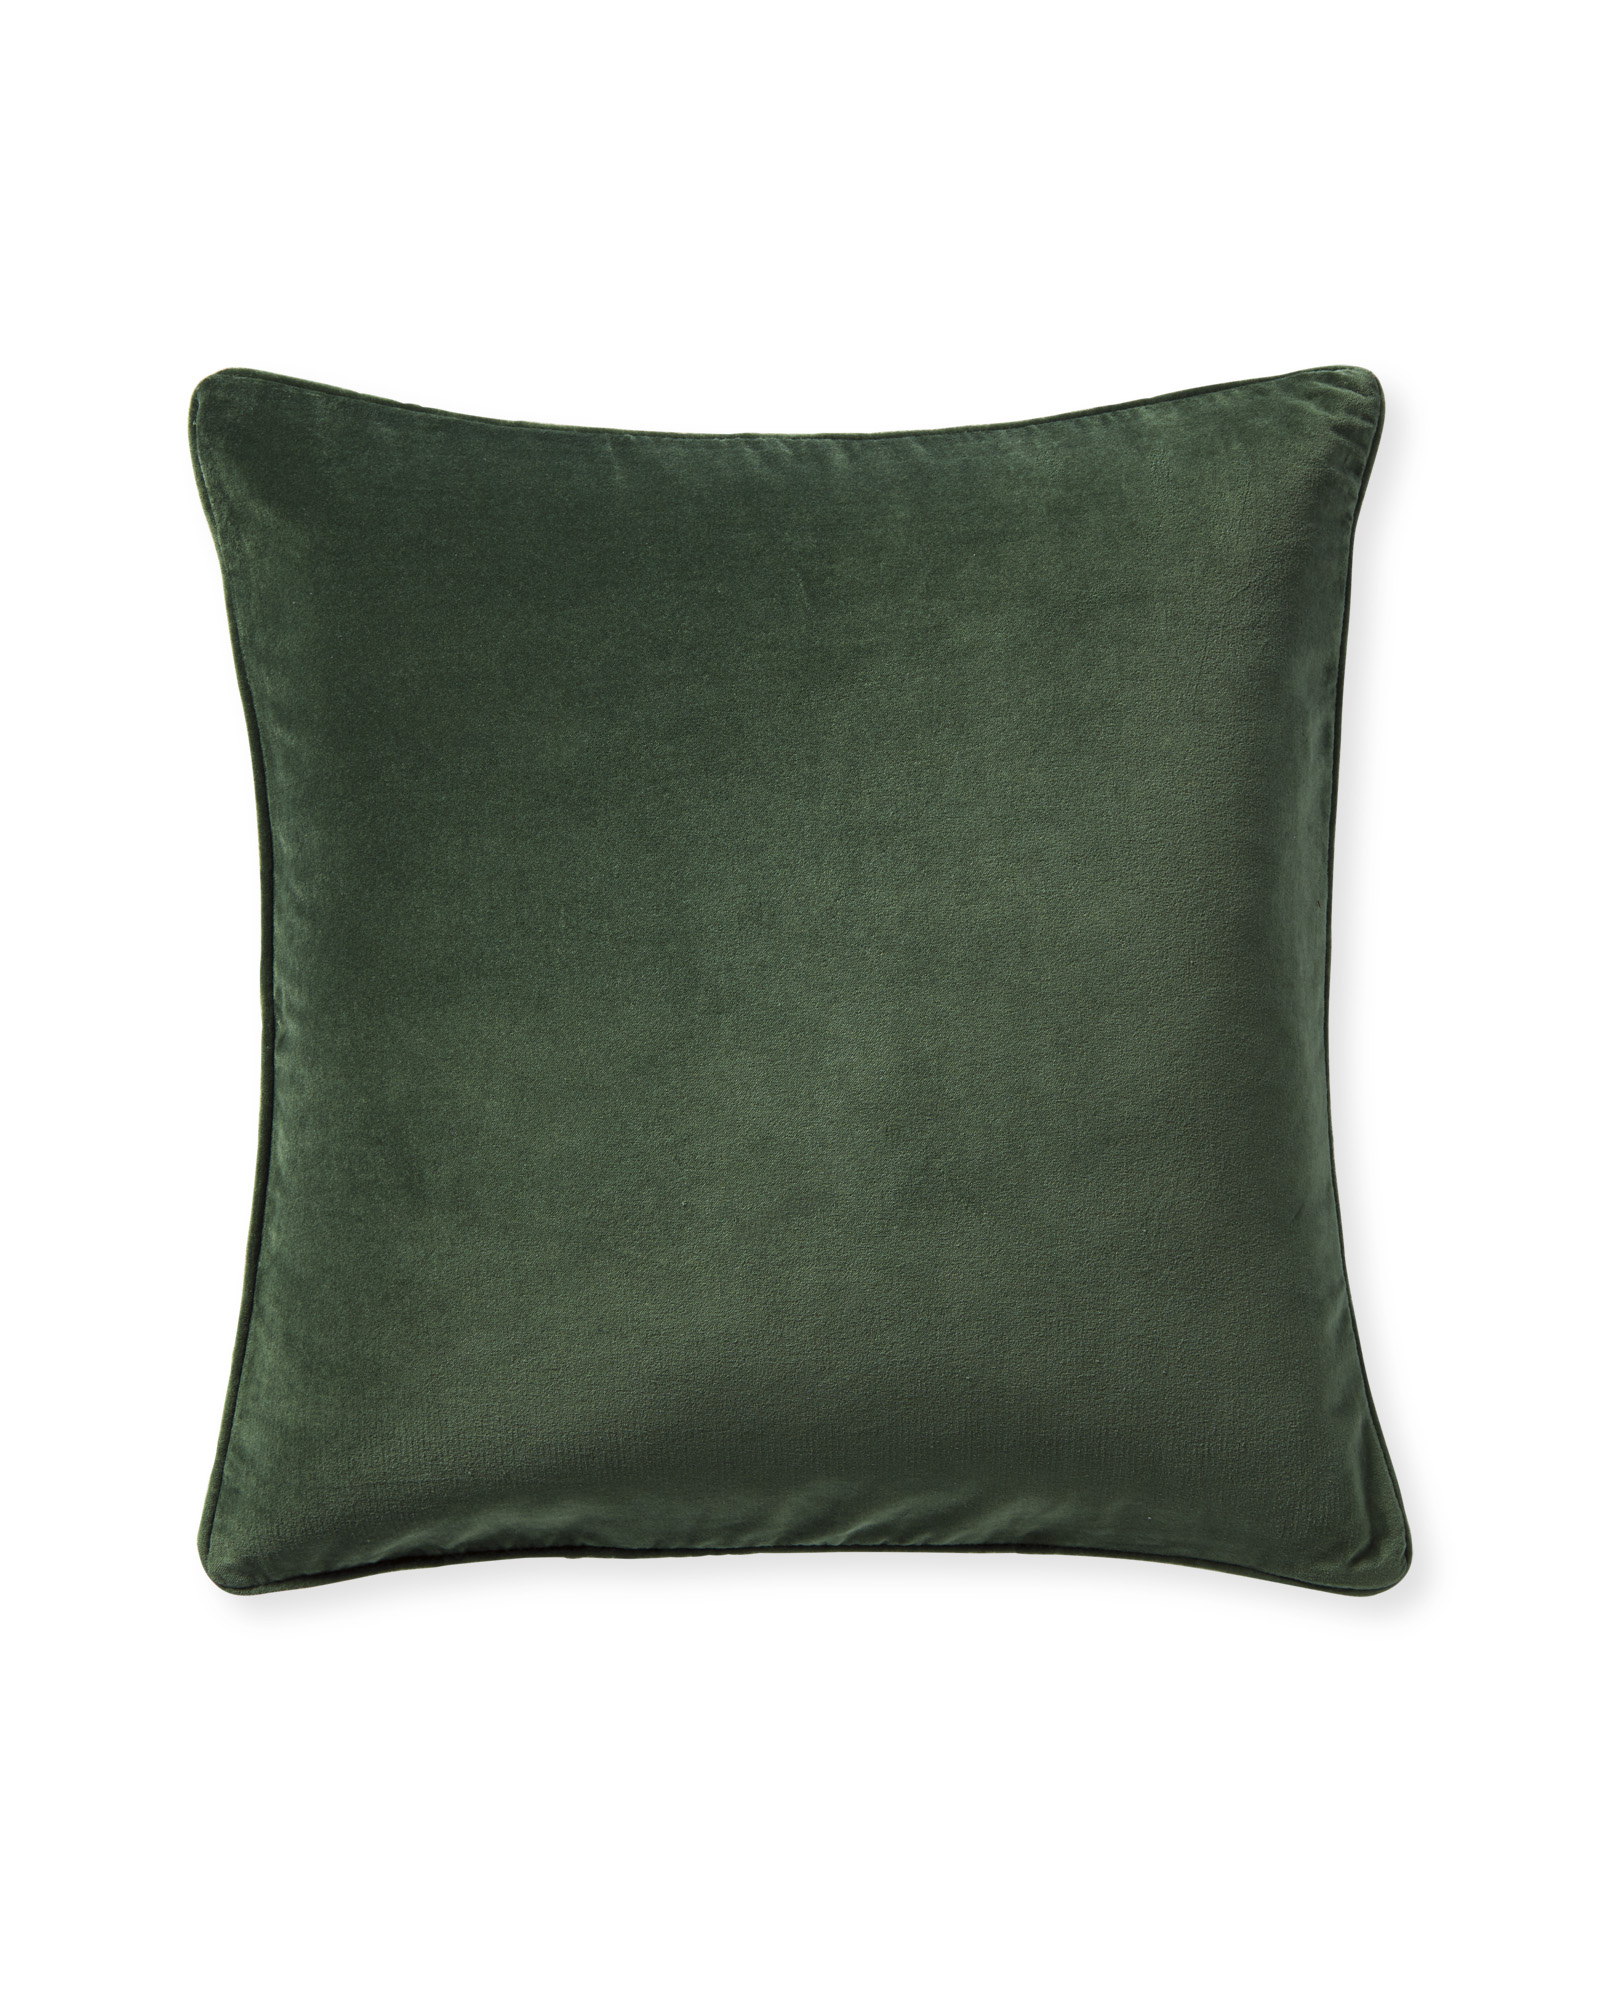 Kingsbury Pillow Cover, Evergreen